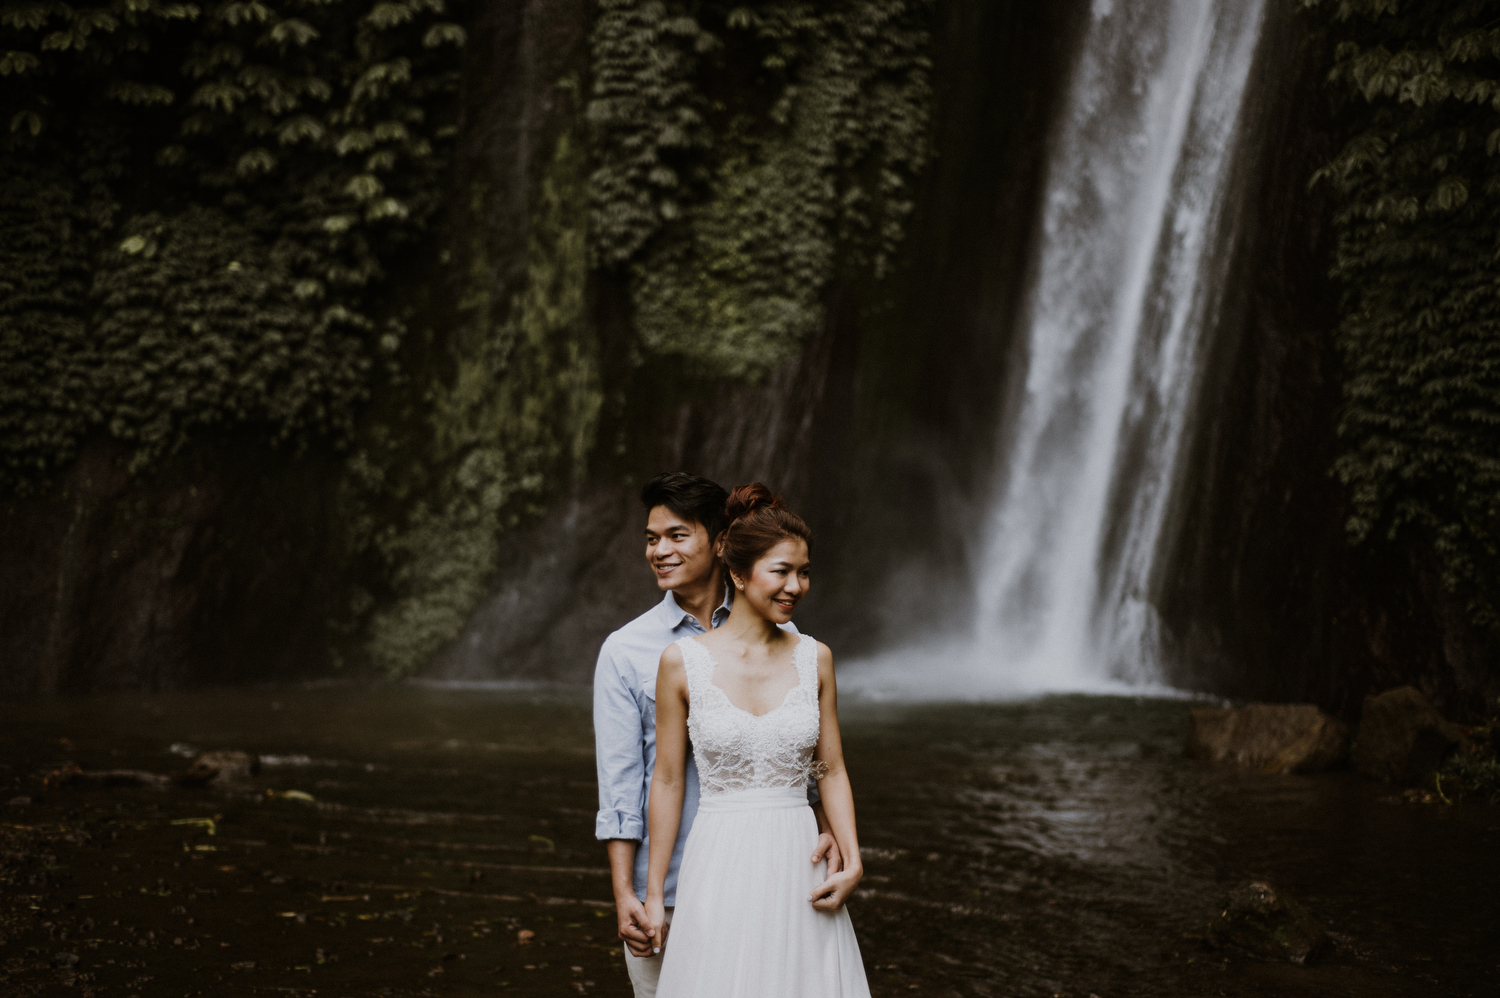 preweddinginbali-bali-batur-ubud-diktatphotography-engagemnet-baliweddingphotographer-weddinginbali-38